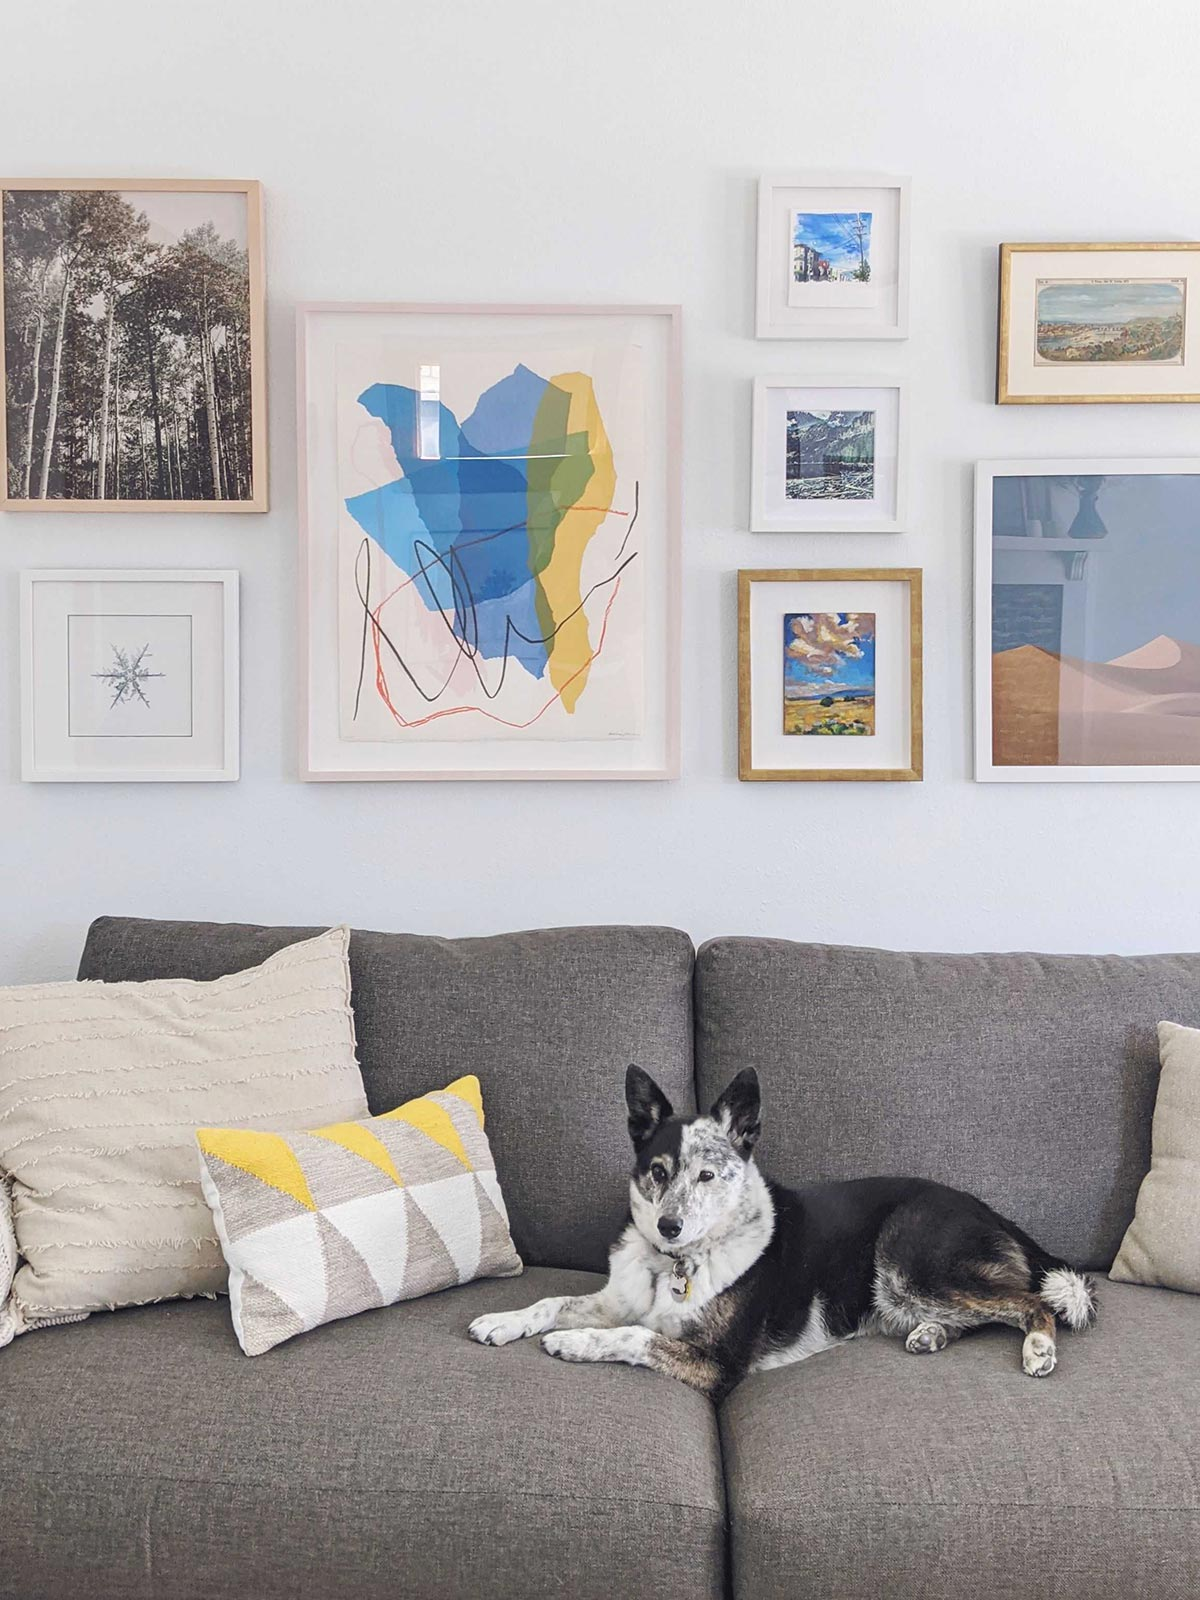 Gallery wall created with Artifact Uprising Gallery frames of different sizes above a grey couch with a blue heeler laying on it